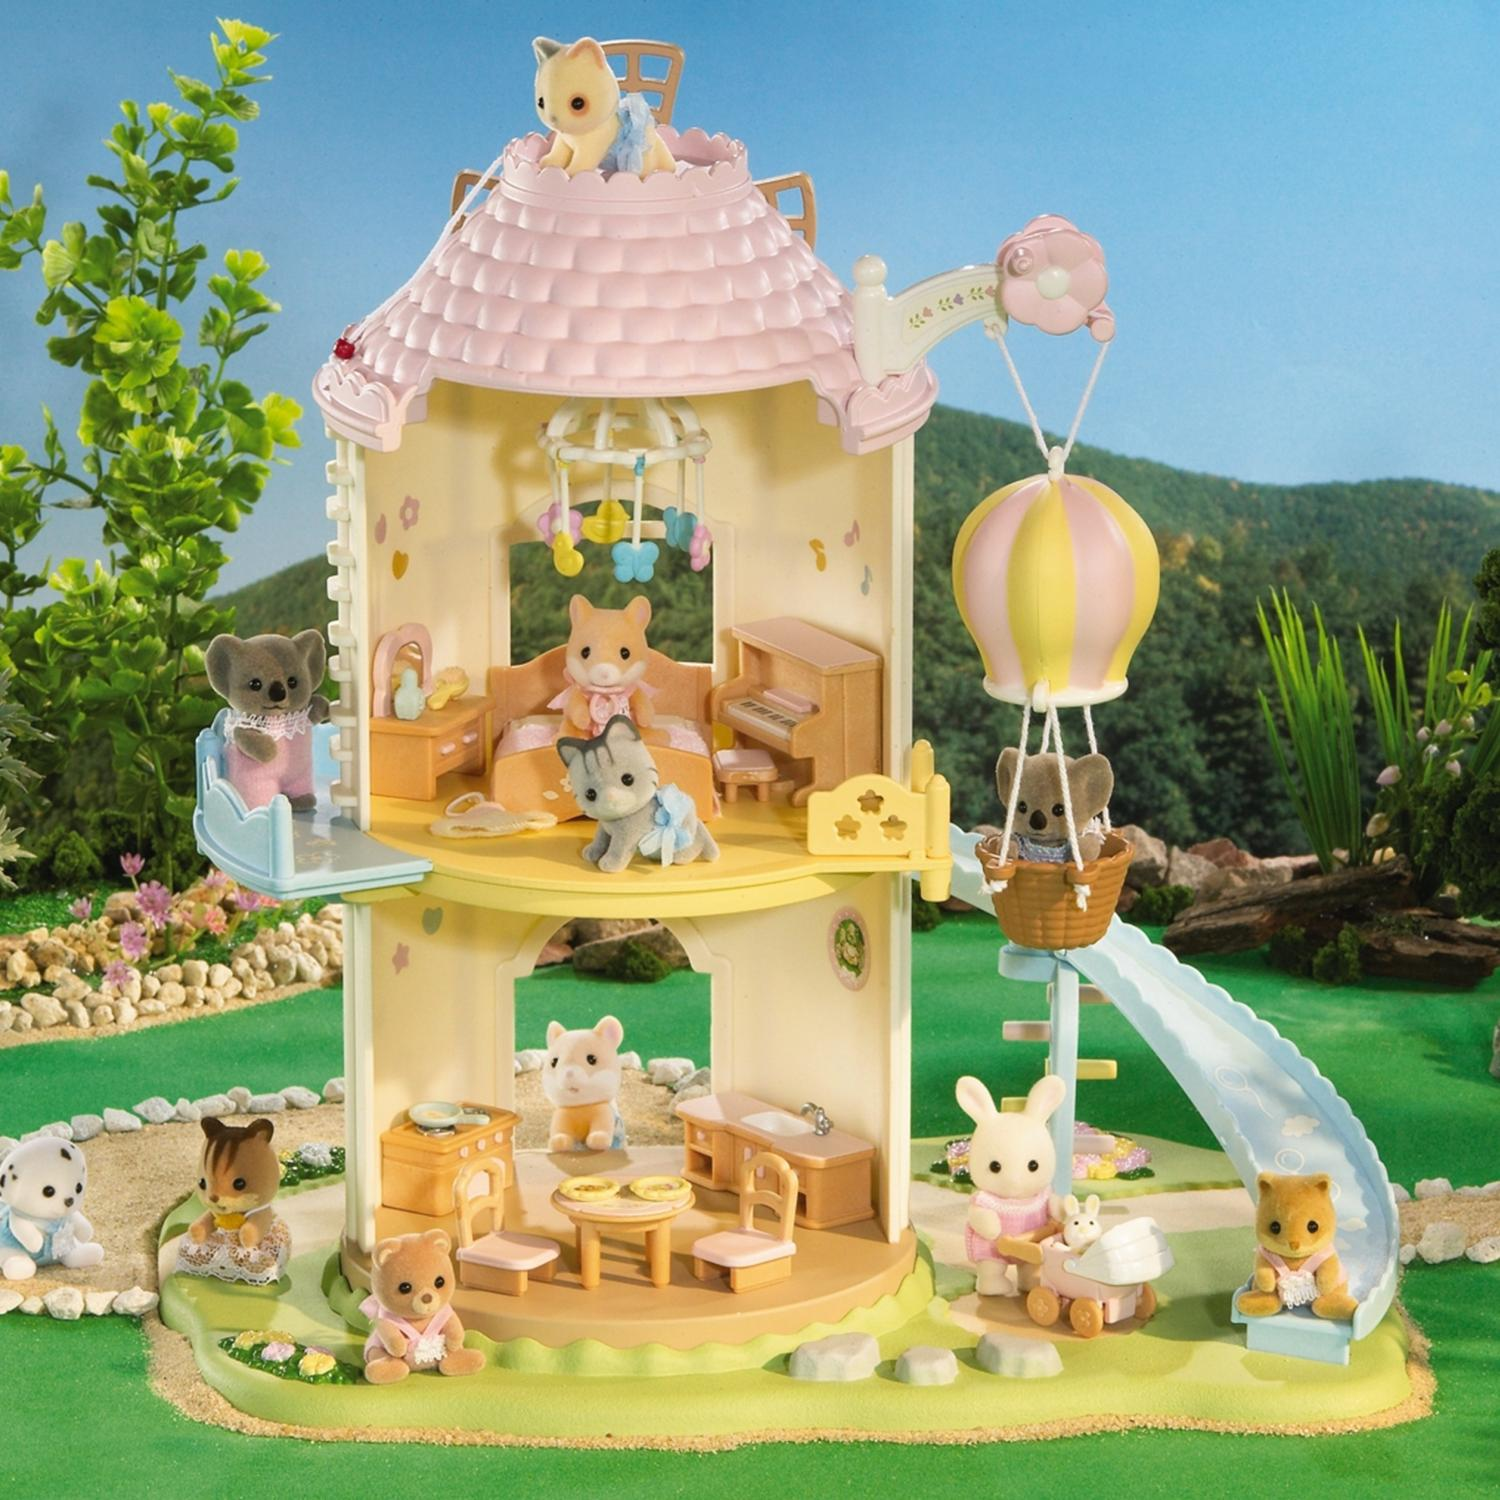 Enter Win Calico Critters Toys Parenting